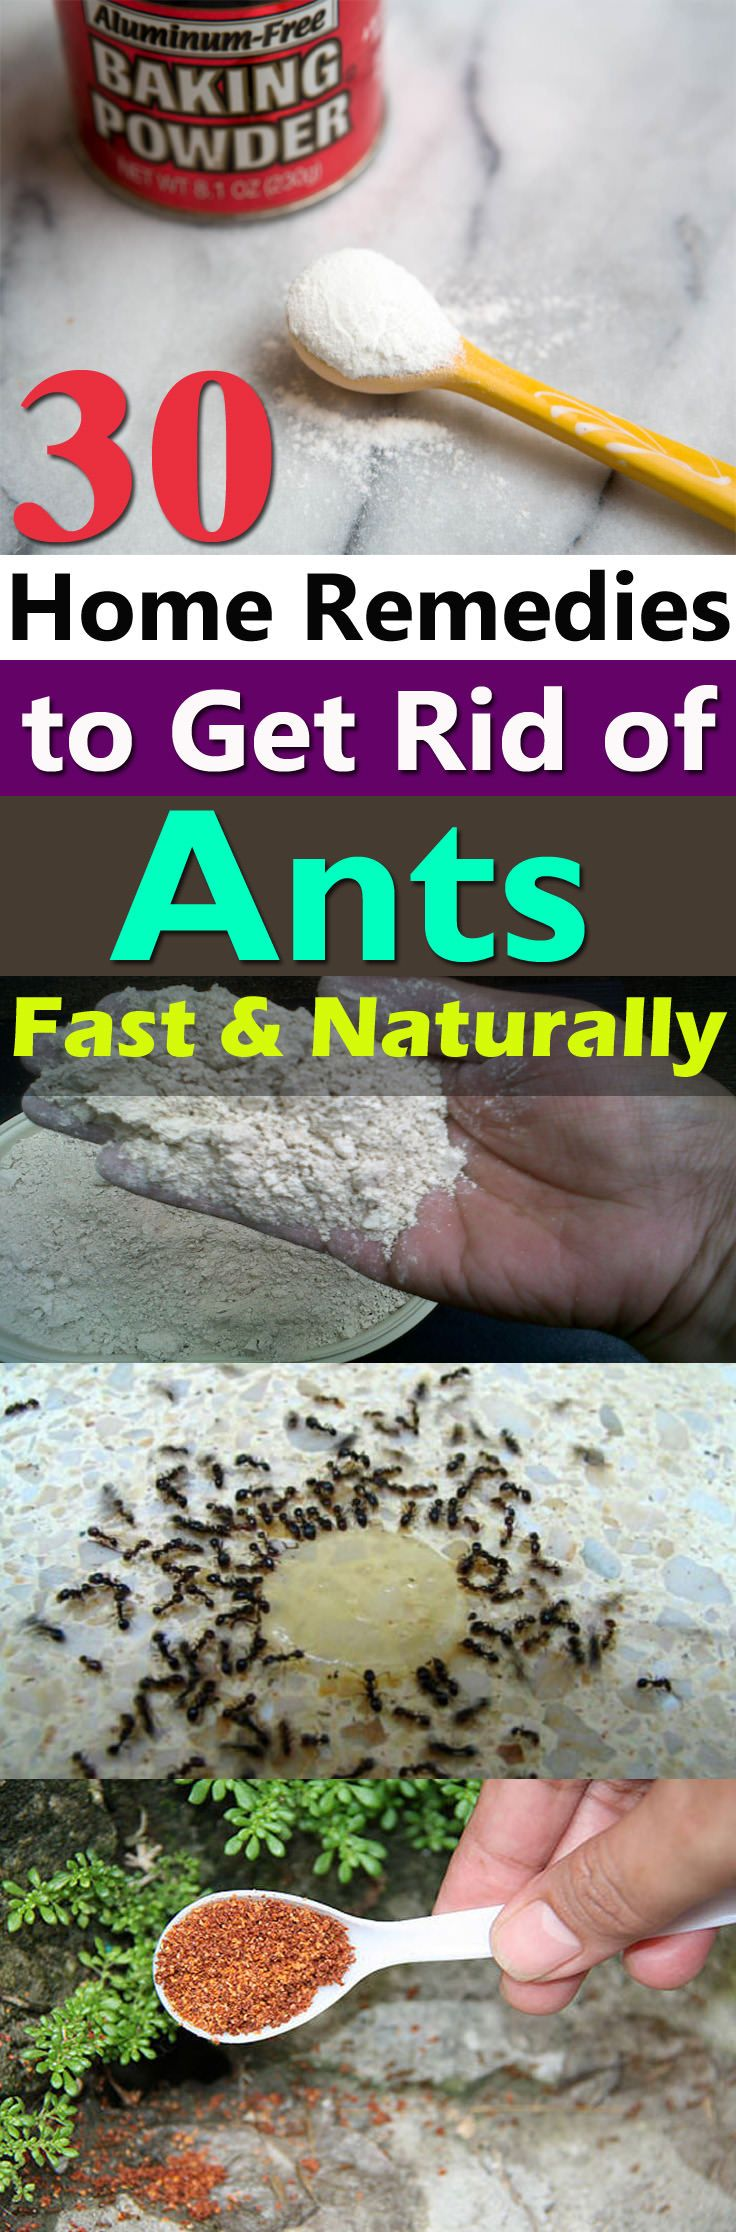 25 Unique Get Rid Of Ants Ideas On Pinterest Ant Spray Ant Killer Spray And Ants Repellant